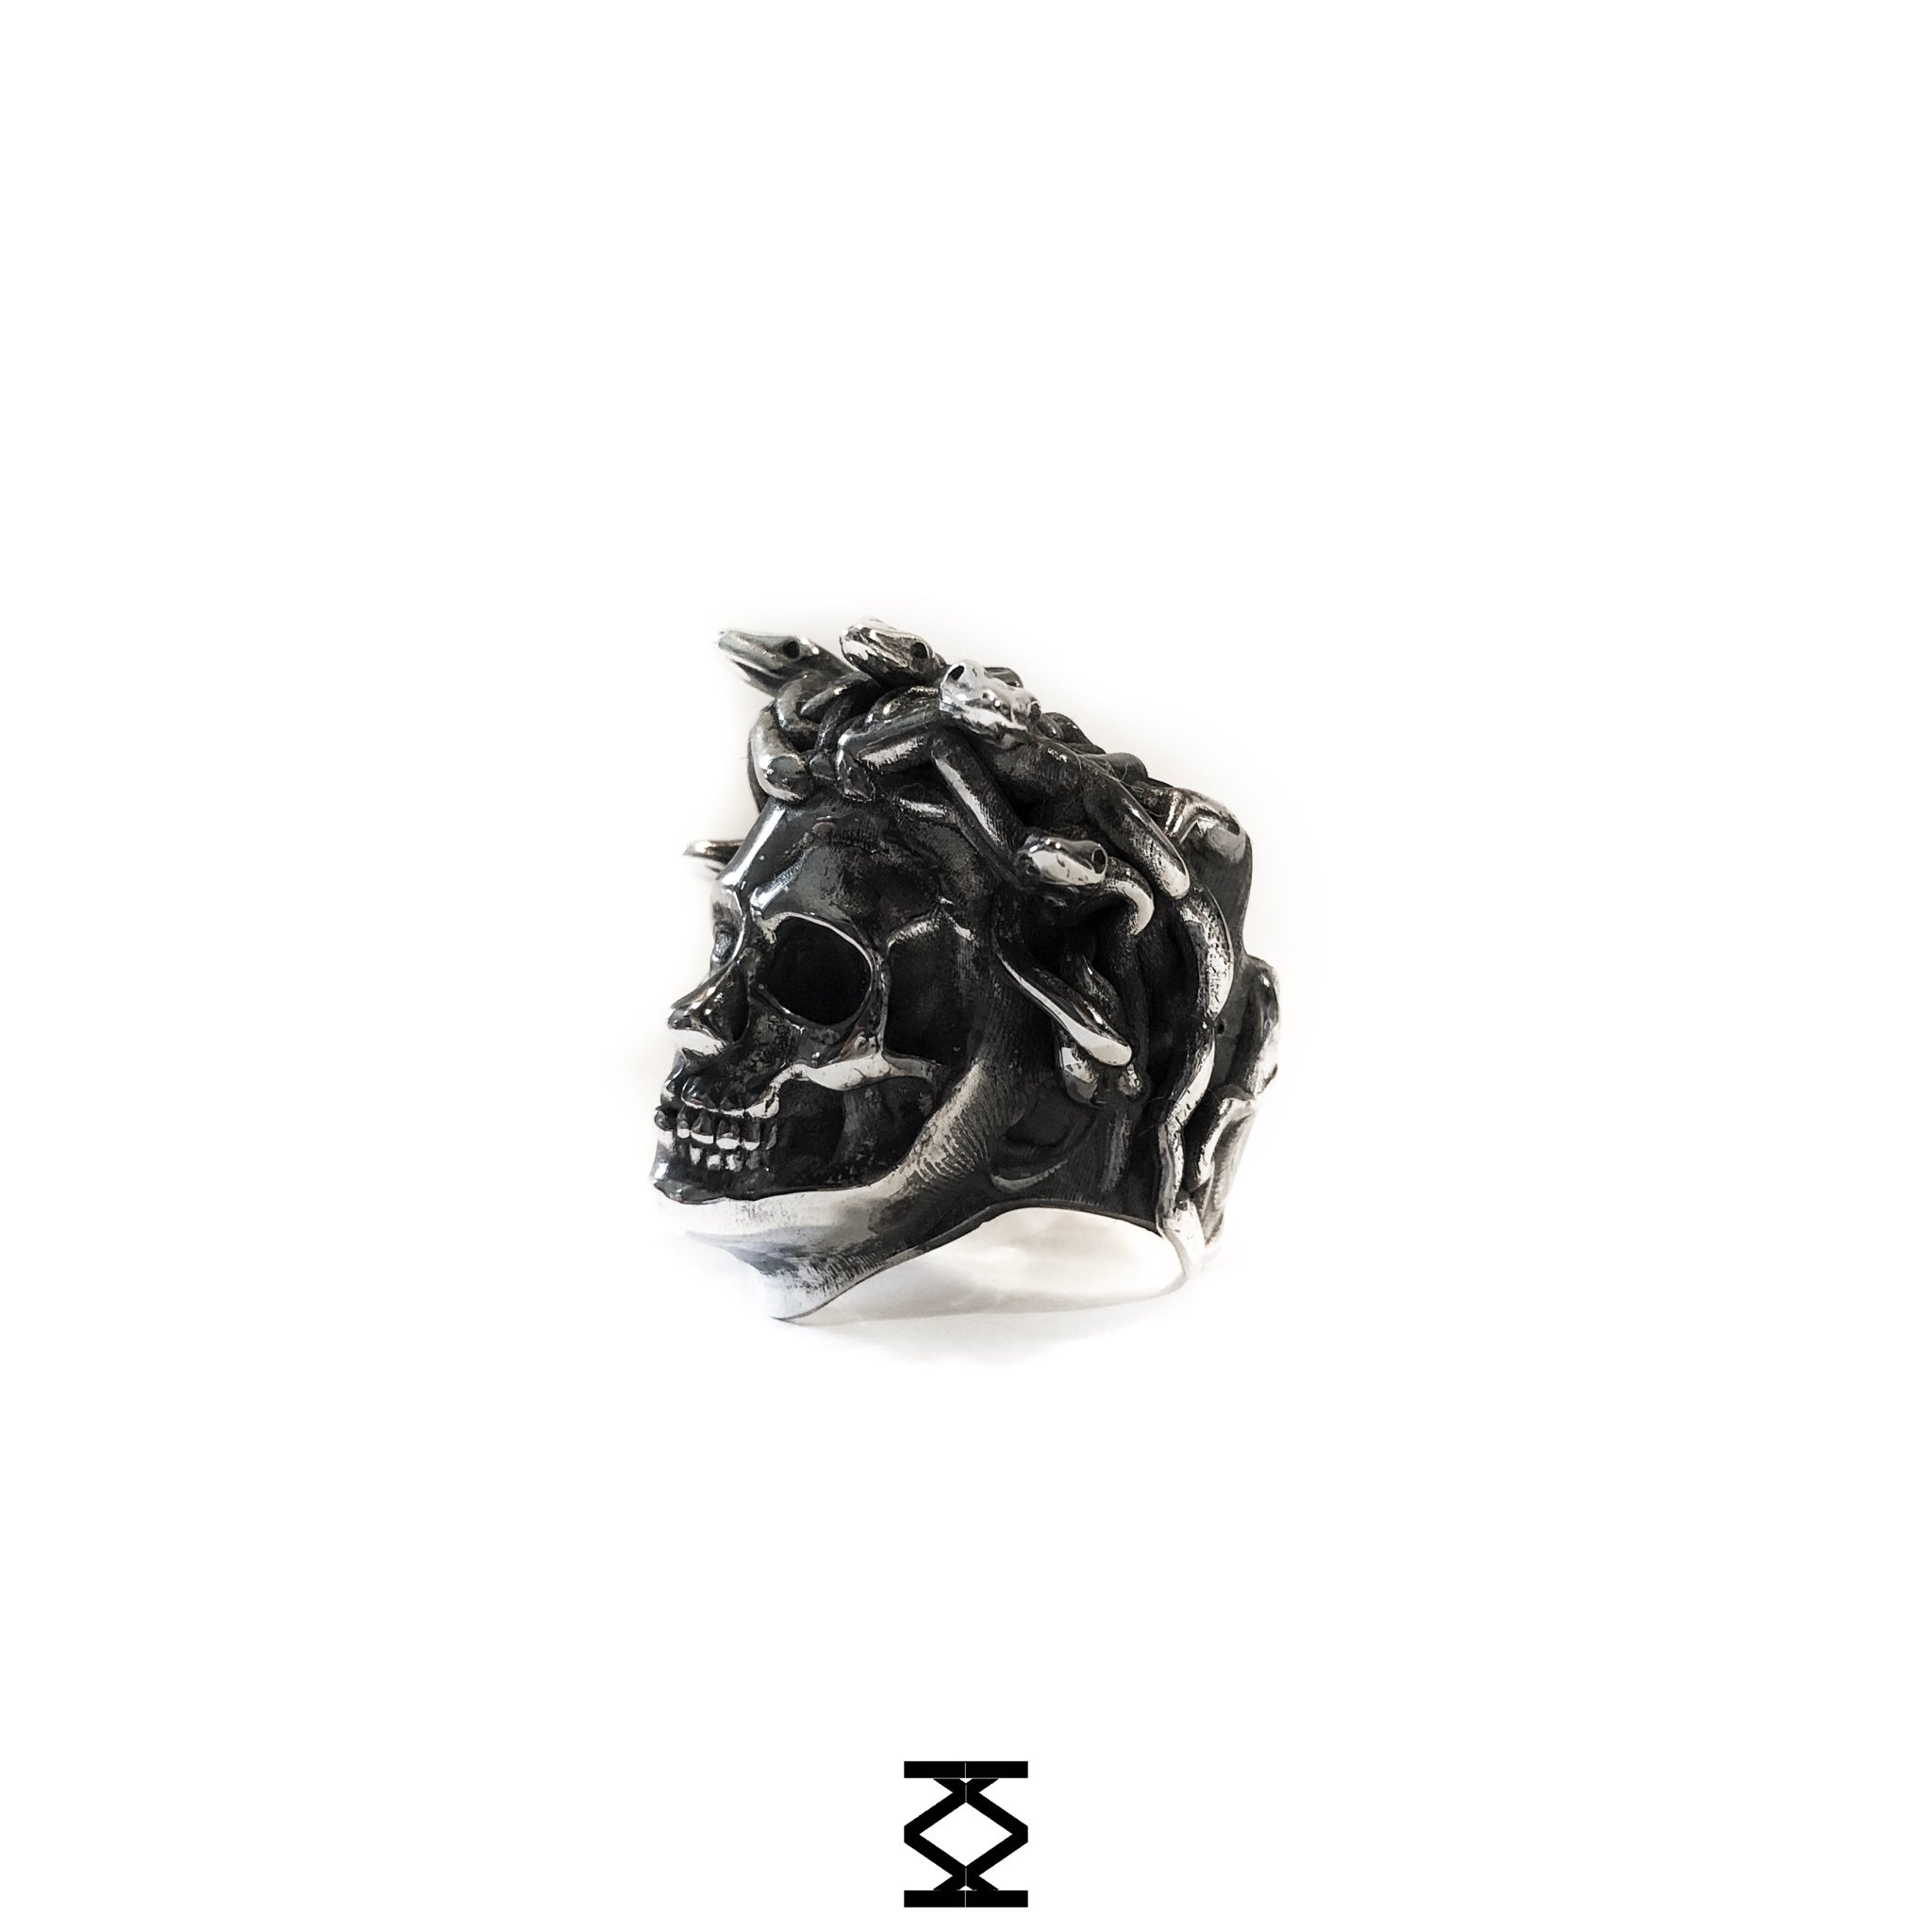 Medusa - custom silver 925 ring half skull and half face